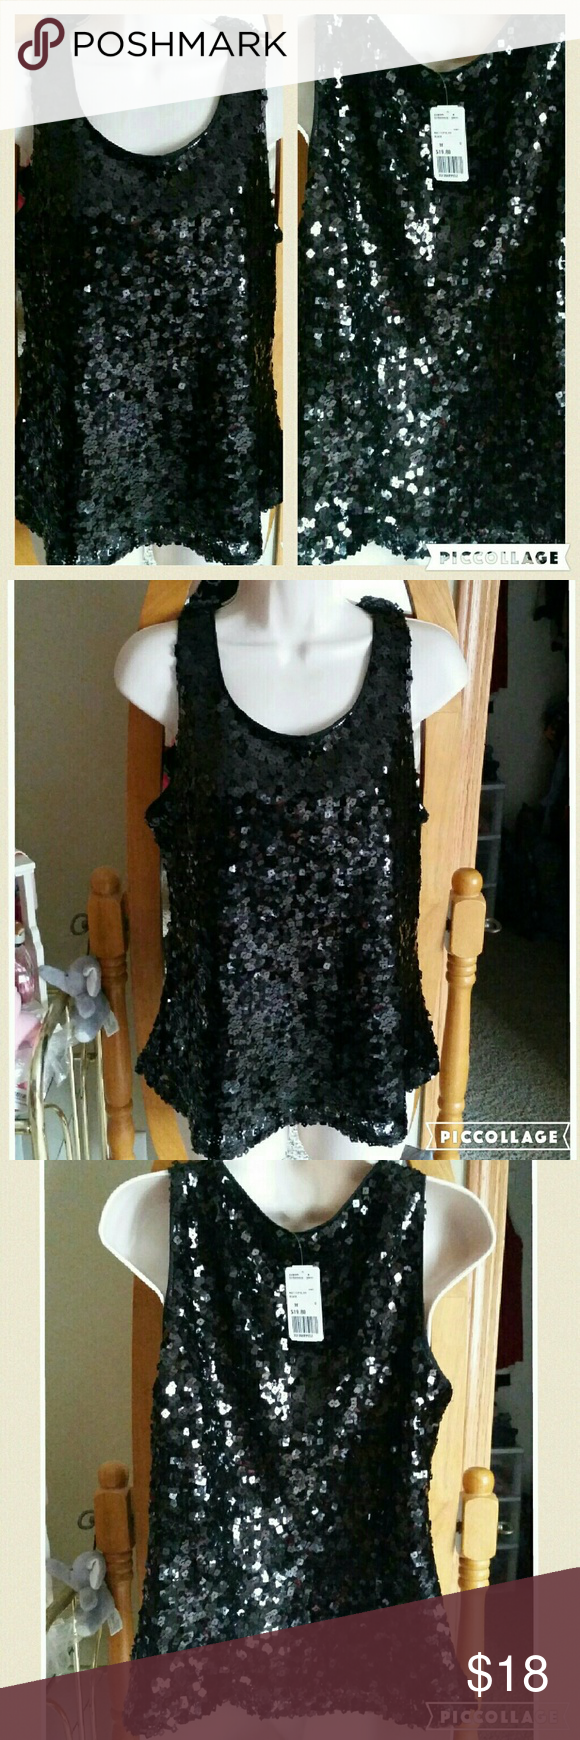 SEQUENCE BLACK TOP BRAND NEW WITH TAG.   100% POLYESTER   CHECK OUT MY OTHER LISTINGS YOU CAN GET DISCOUNT WHEN YOU BUY BUNDLE. HAPPY SHOPPING! ! ! Forever 21 Tops Blouses